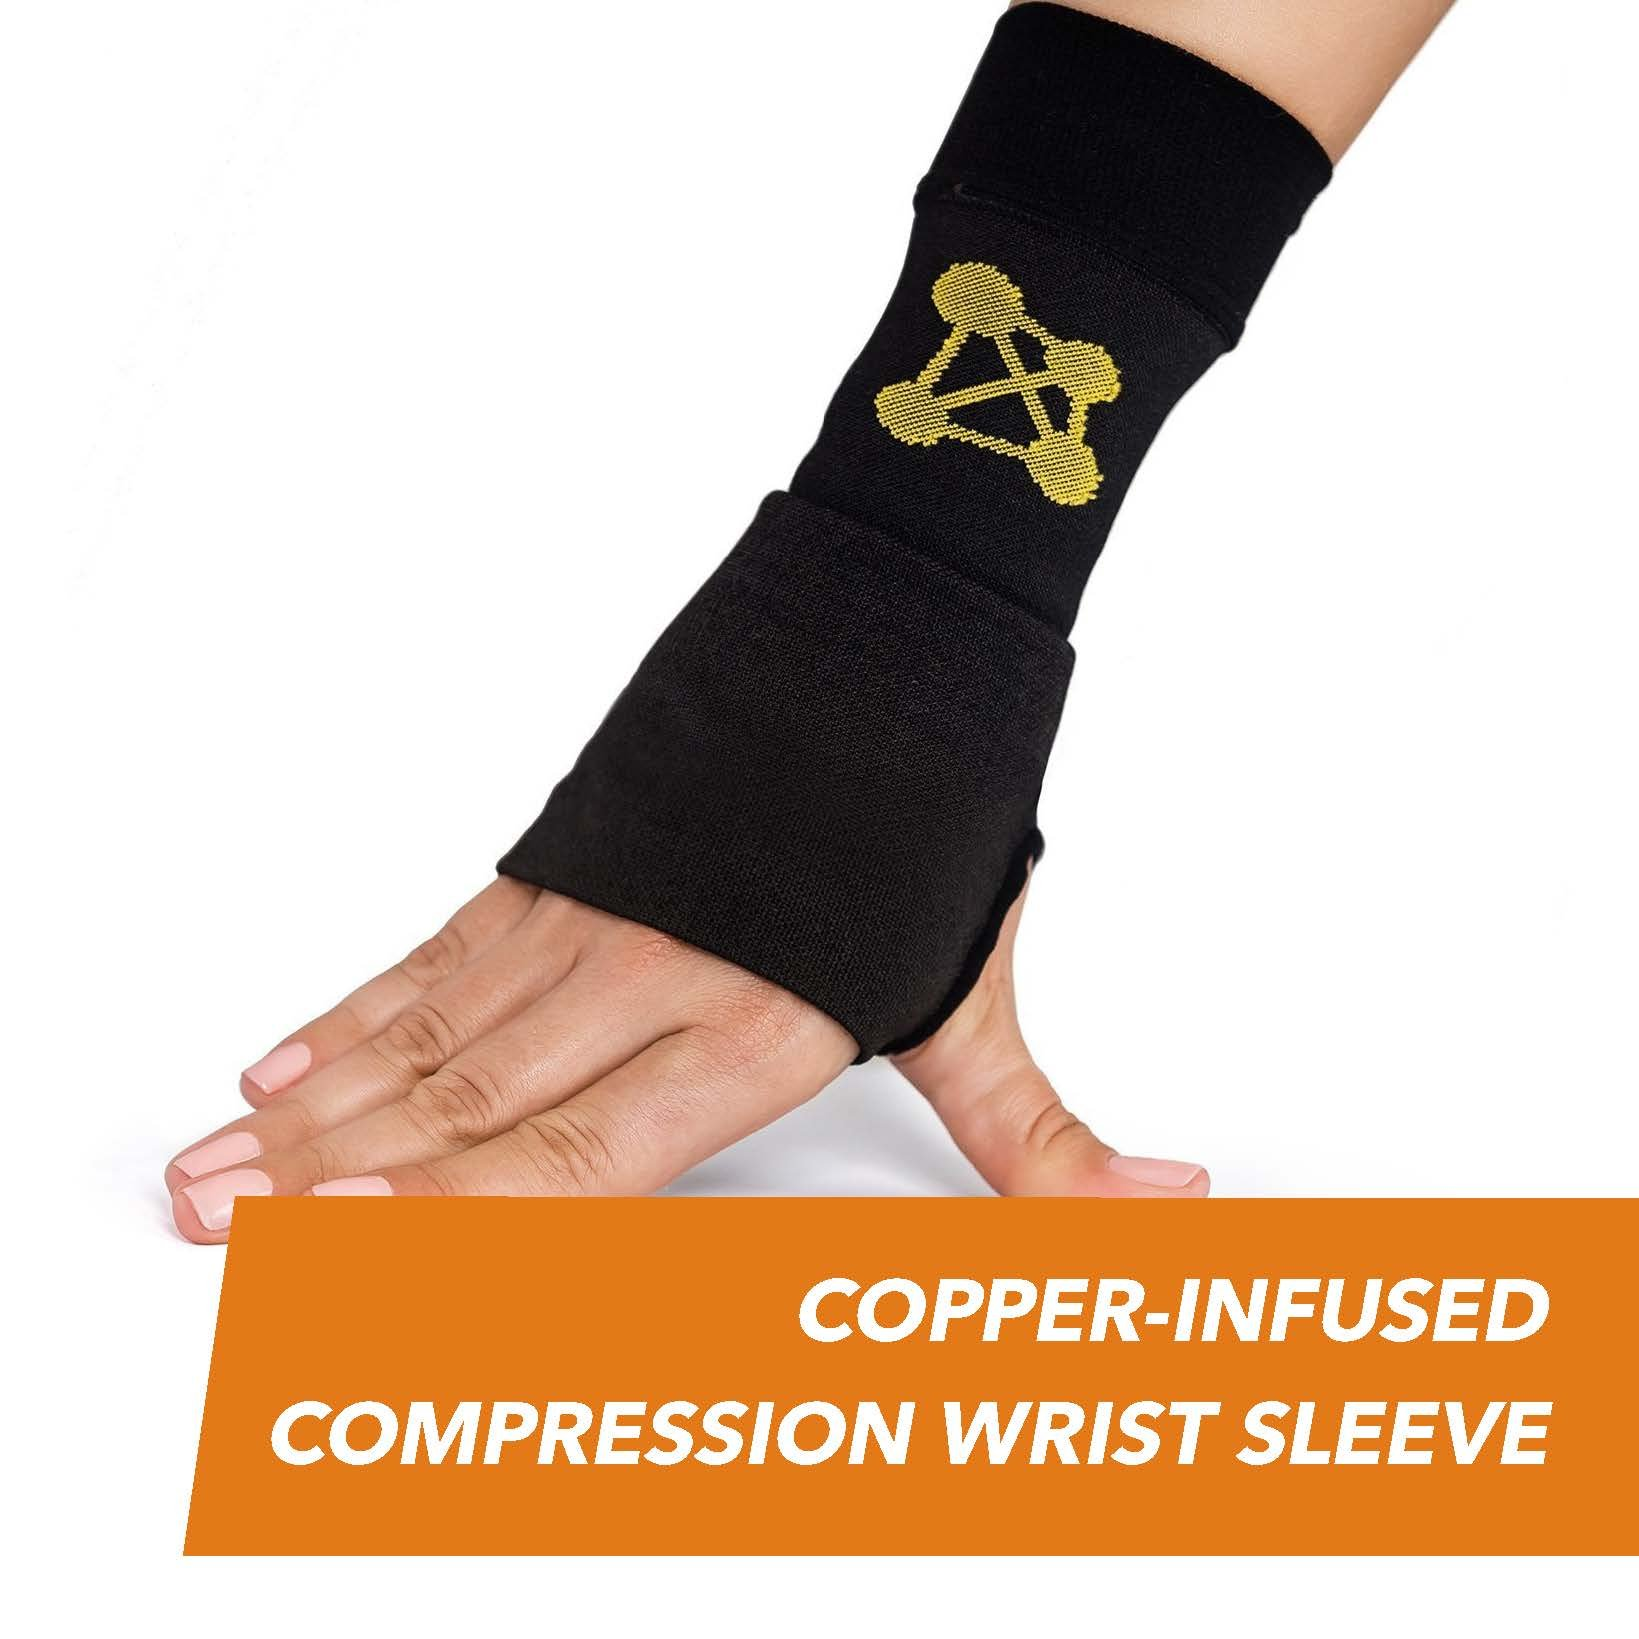 CopperJoint Copper-Infused Compression Wrist Sleeve, High-Performance Design Promotes Improved Circulation to Help Reduce Inflammation and Pain, Single Sleeve (Right, Small)